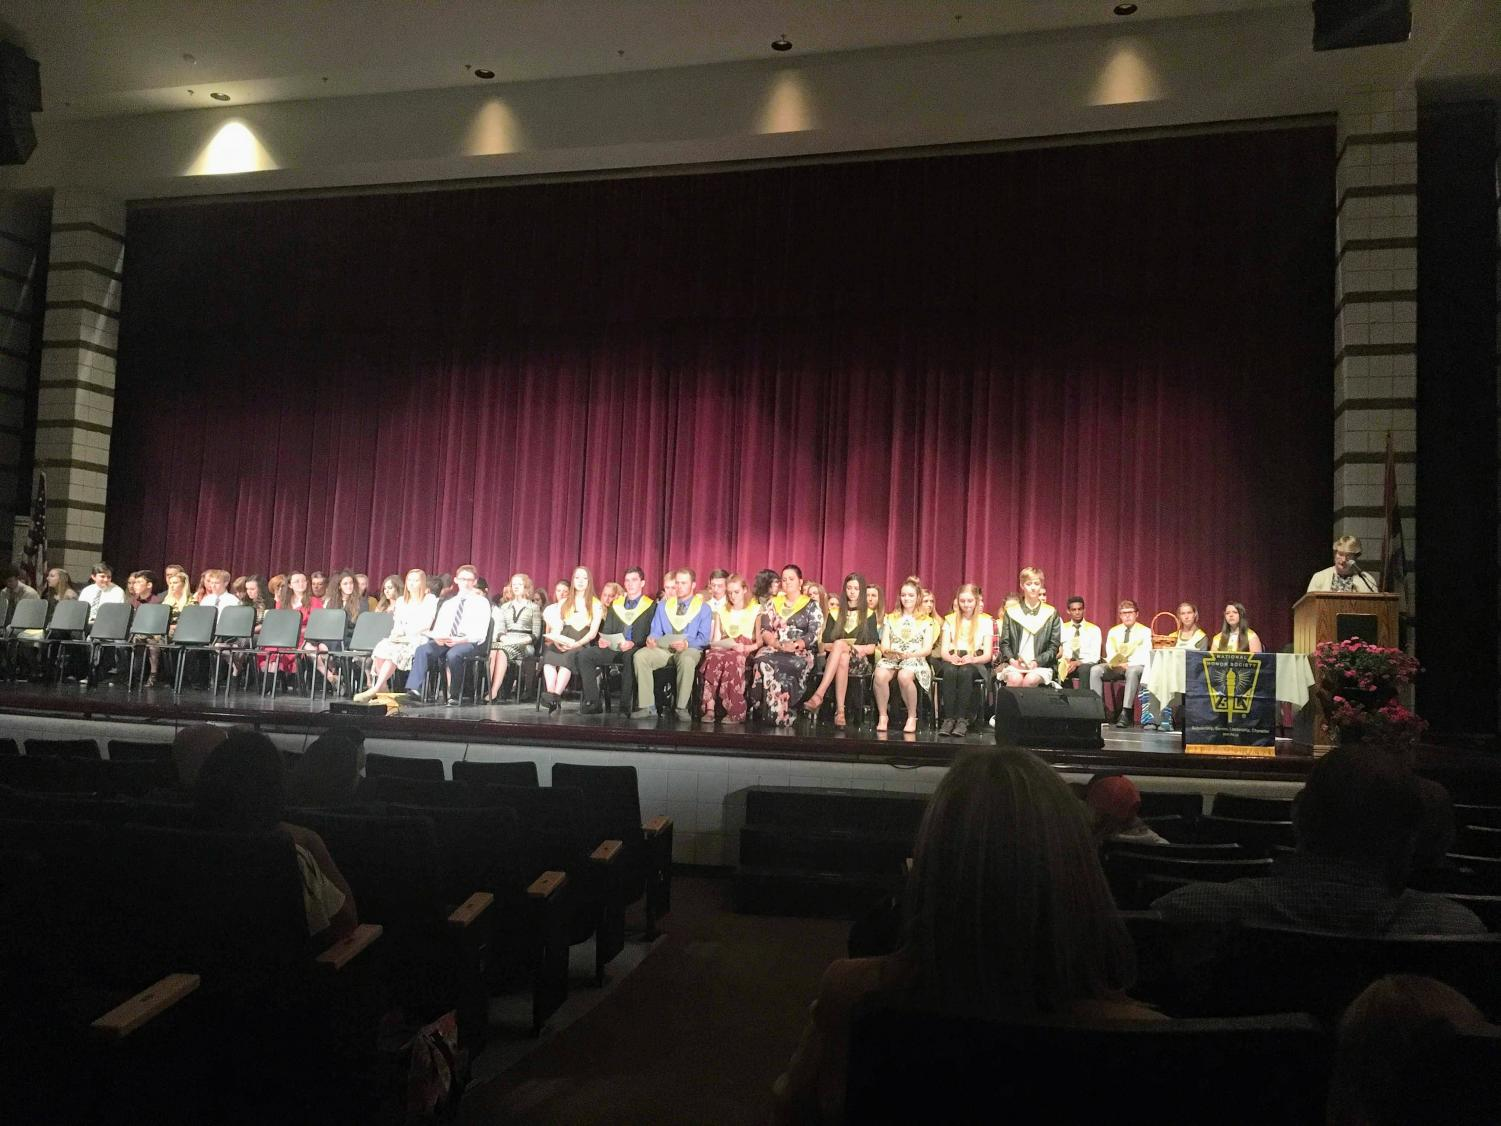 SPECIAL ED: Graduating NHS seniors prepare to move on while incoming seniors who meet the exacting standards of this organization get welcomed in during this induction ceremony that took place on Tues, May 15.